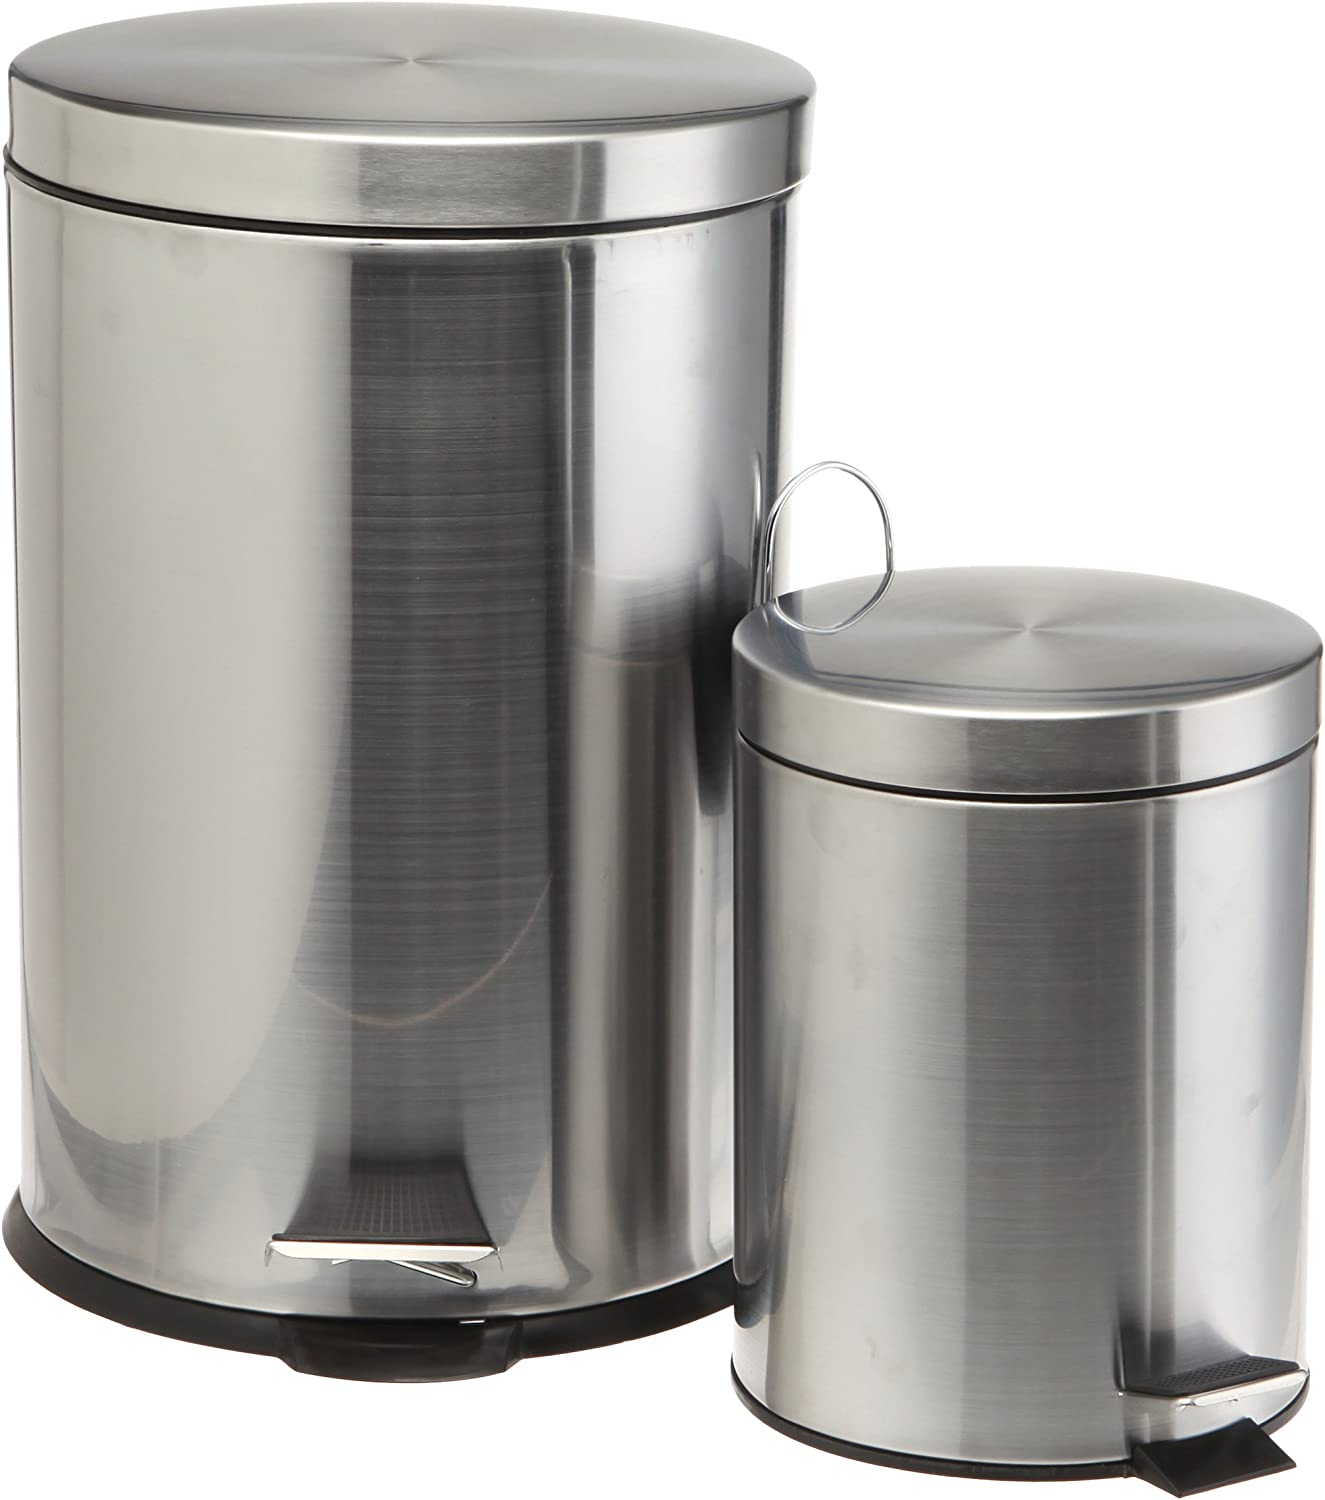 Geneva Home Fashion 1.3 Gallon Brushed Stainless Steel 5-Liter Rectangle Step Trash Cans